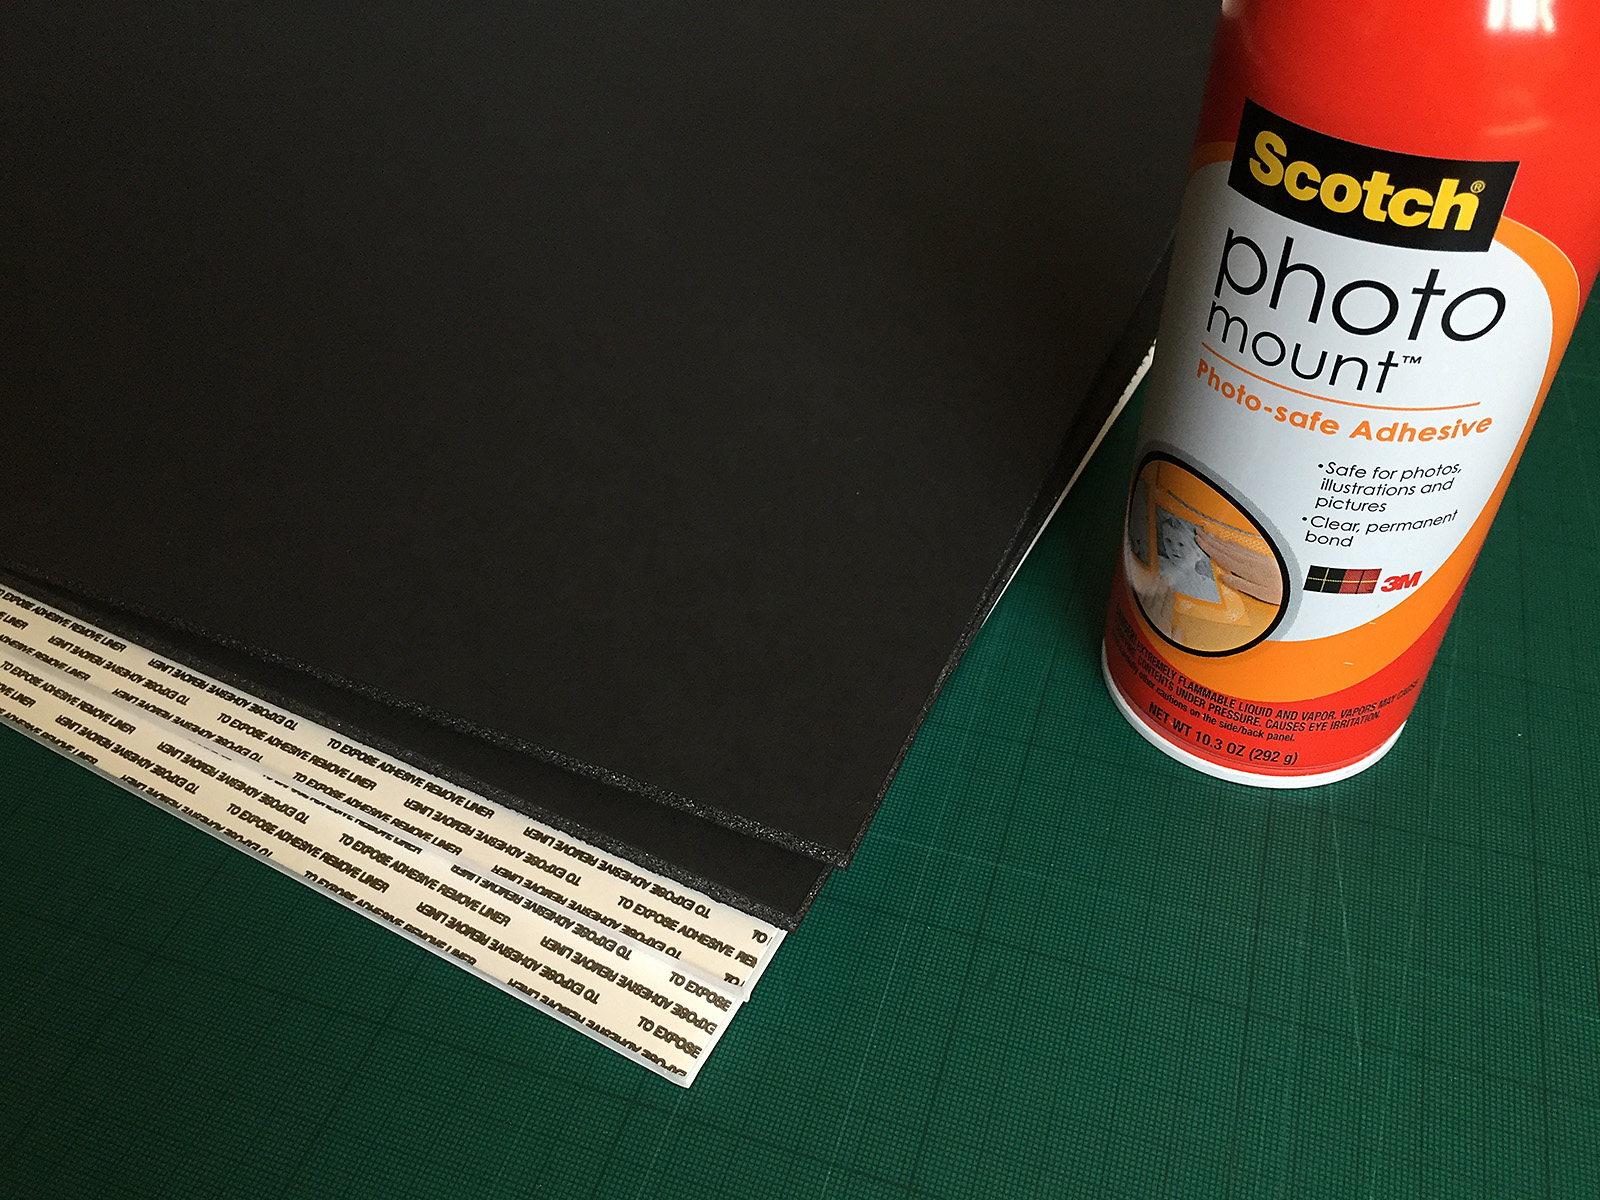 About all you need to get your image ready for display is the foam board and some glue - both easily found in a craft supply store.